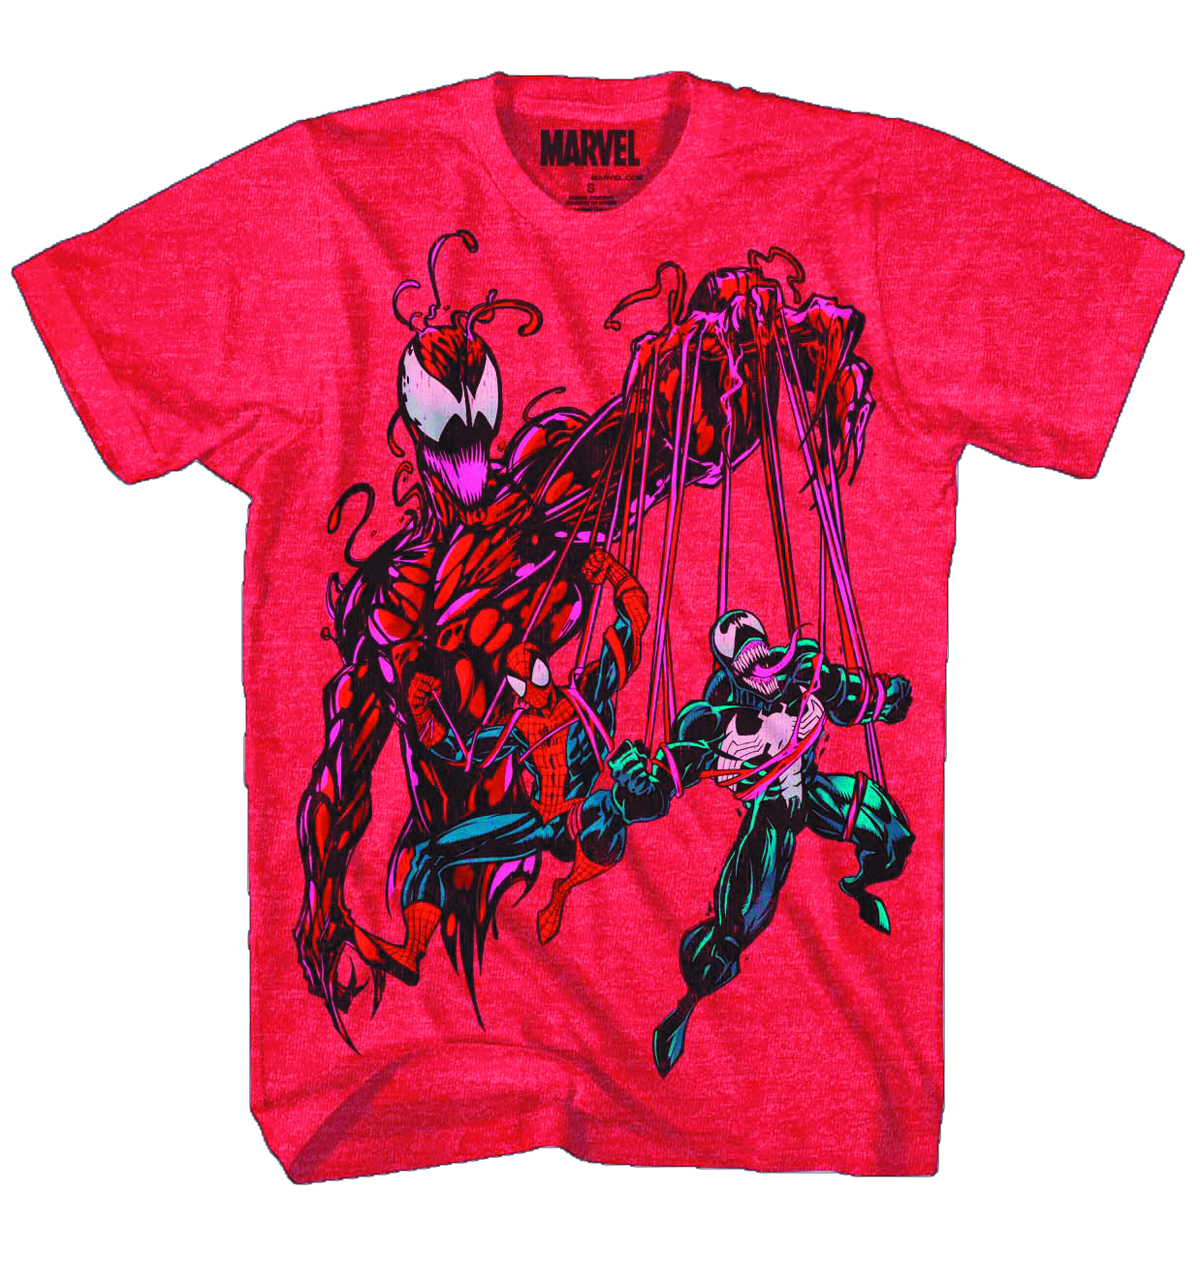 CARNAGE CARNAL PUPPET PX RED HEATHER T/S LG